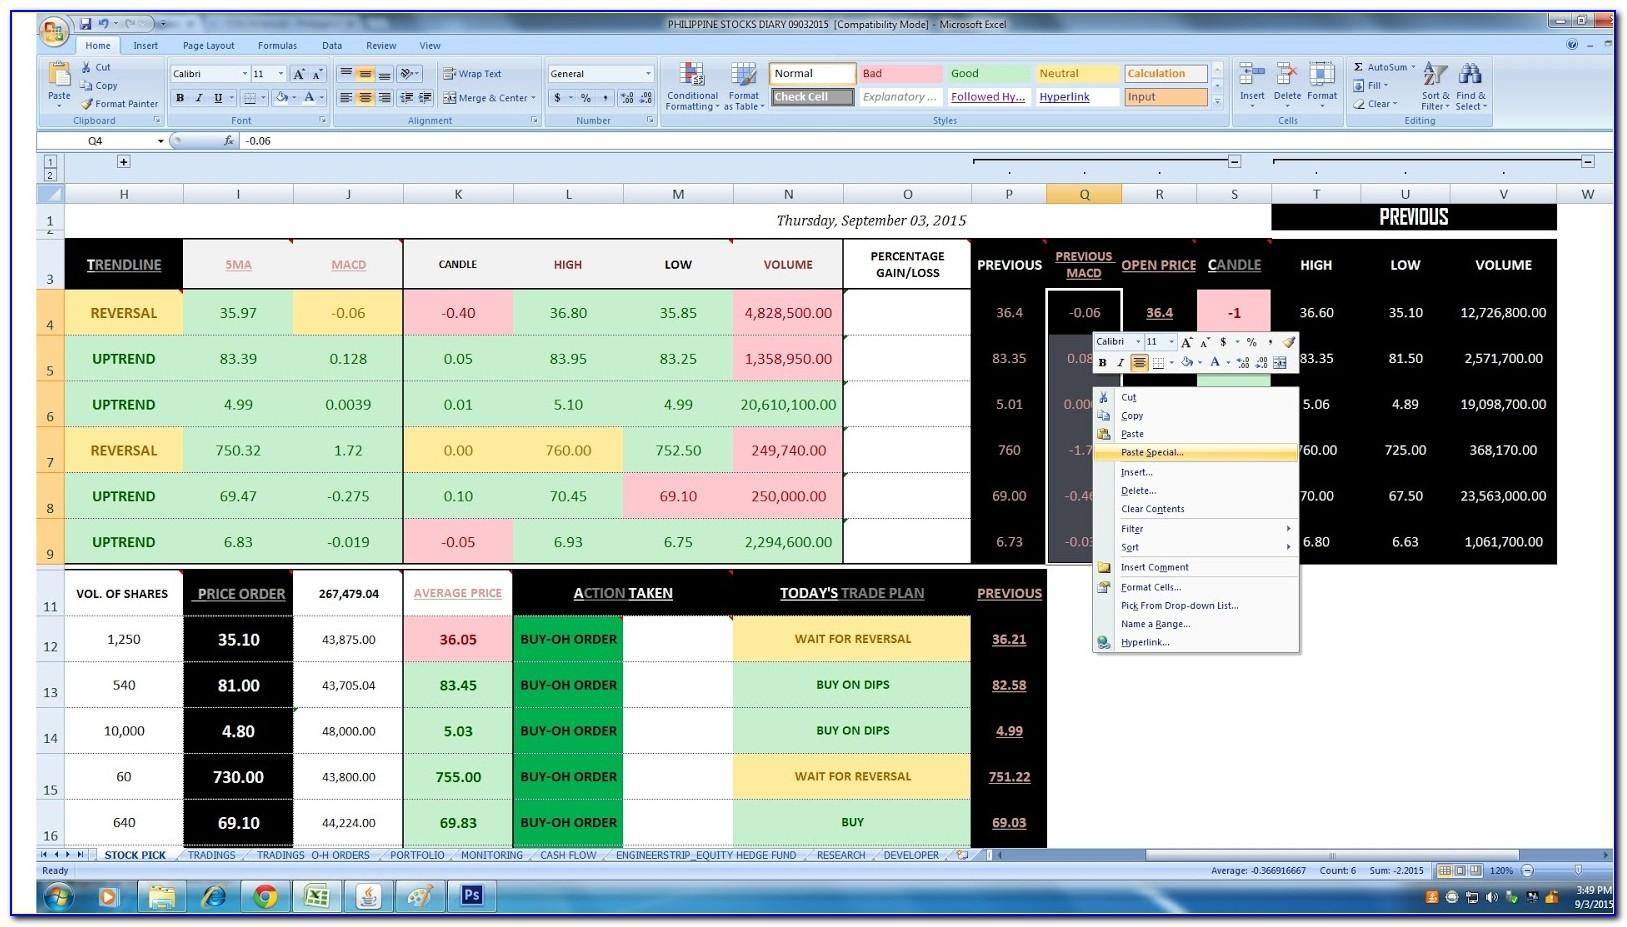 Stock Summary Report Format In Excel